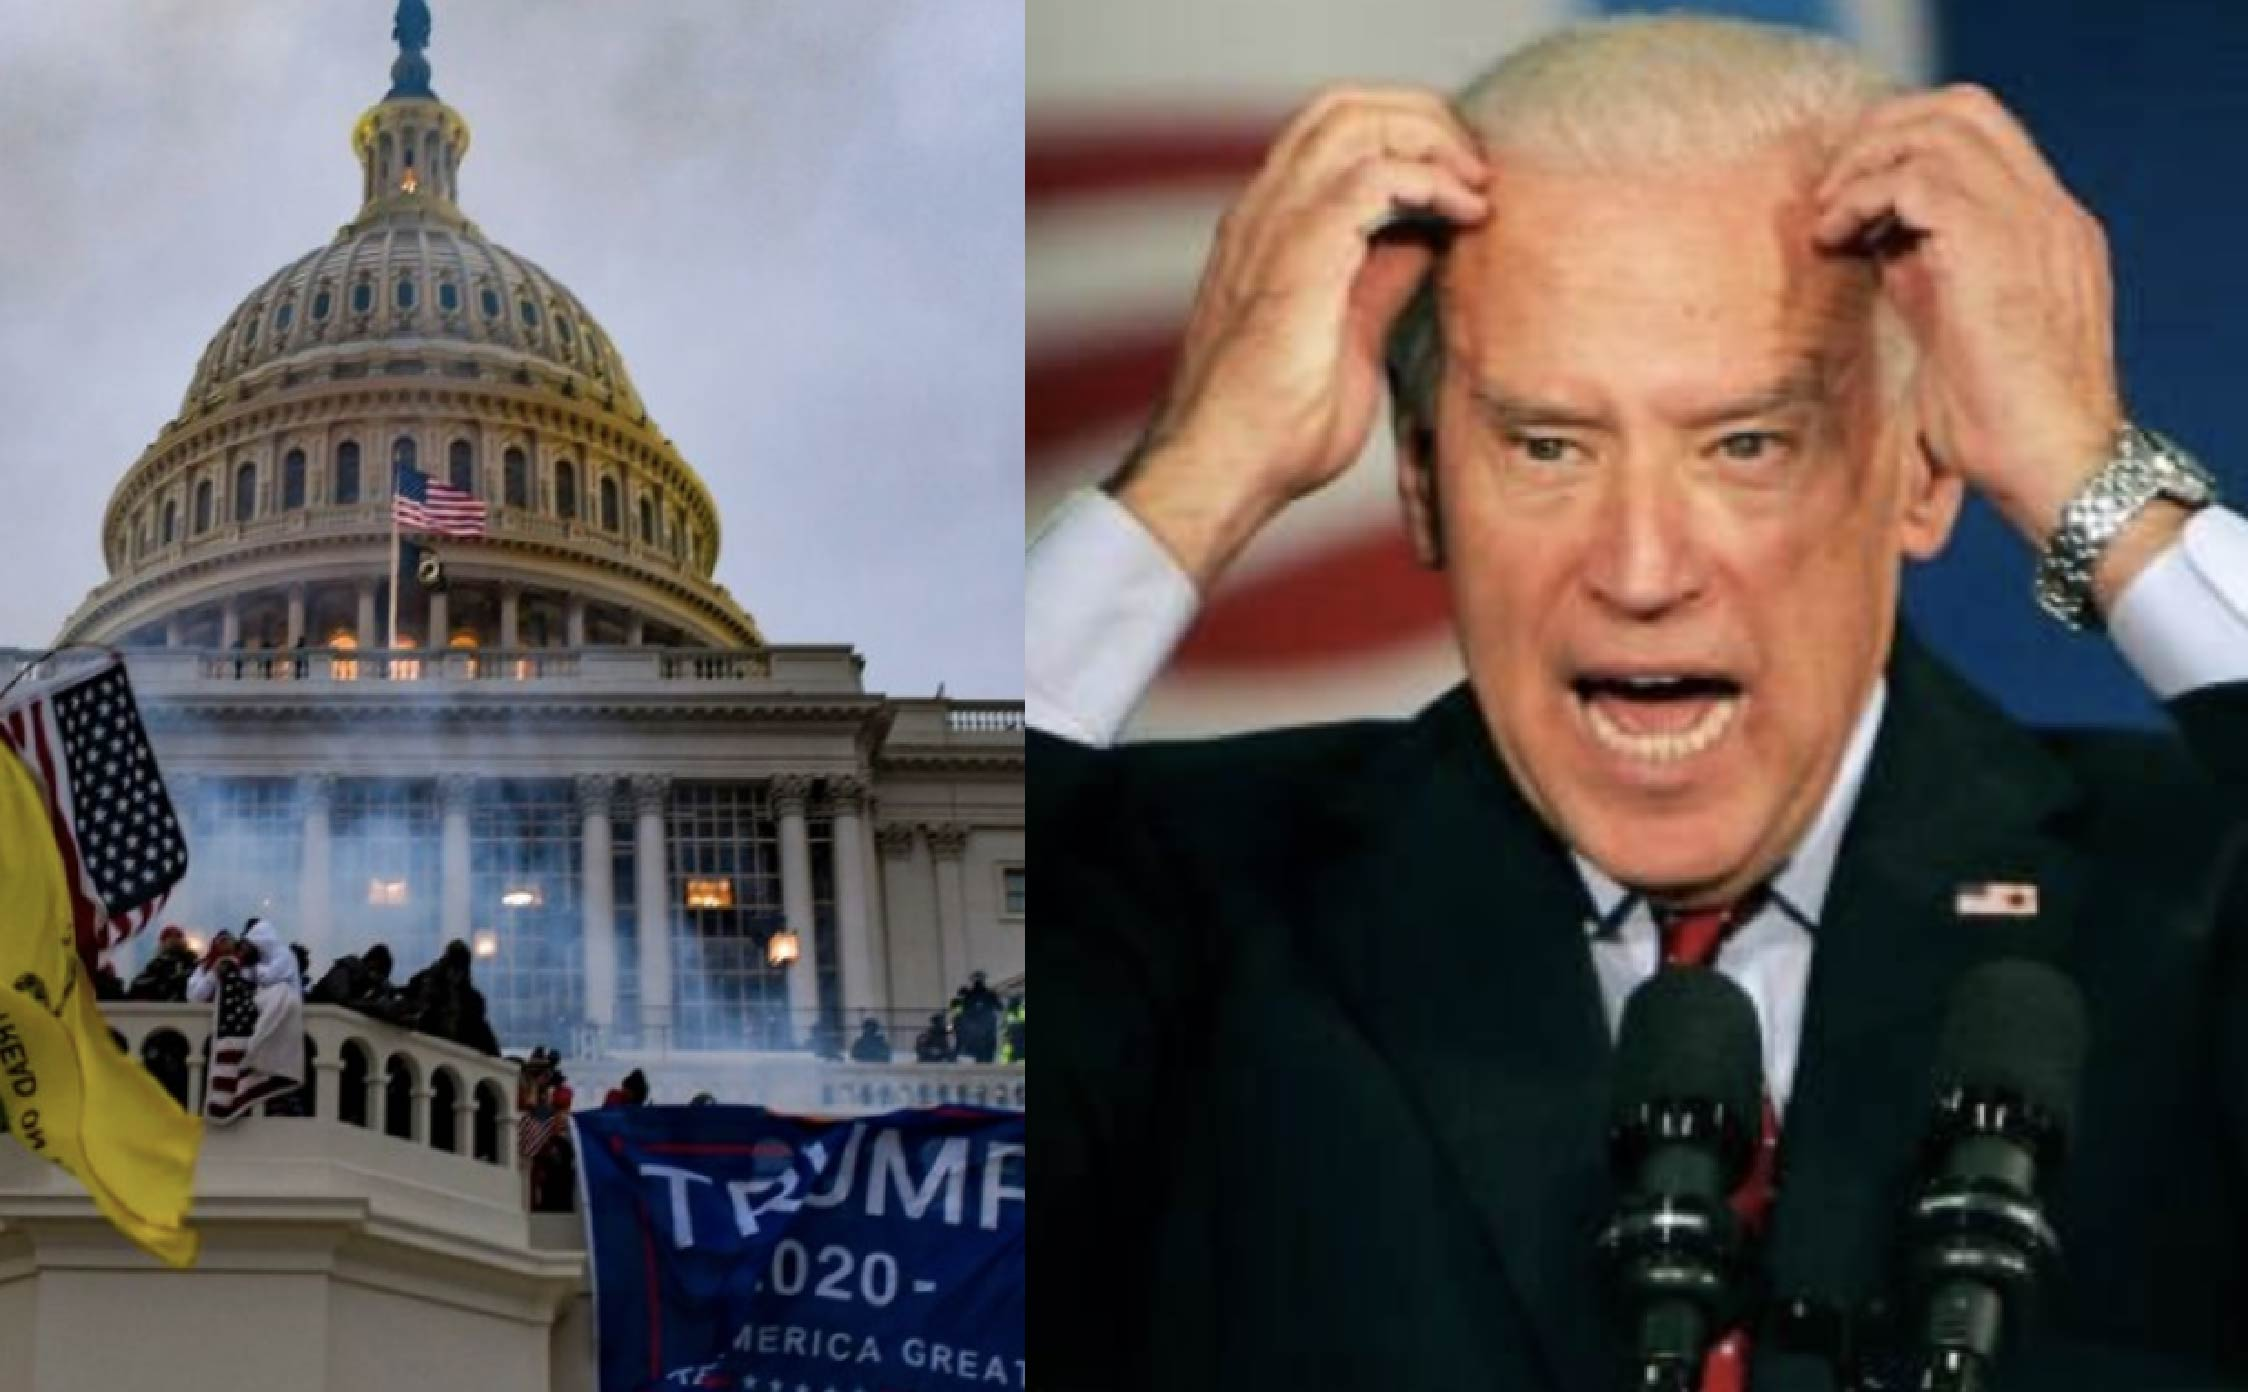 """Joe Biden Just Got Some Very Bad News About His So-Called Jan 6th """"Insurrection"""""""